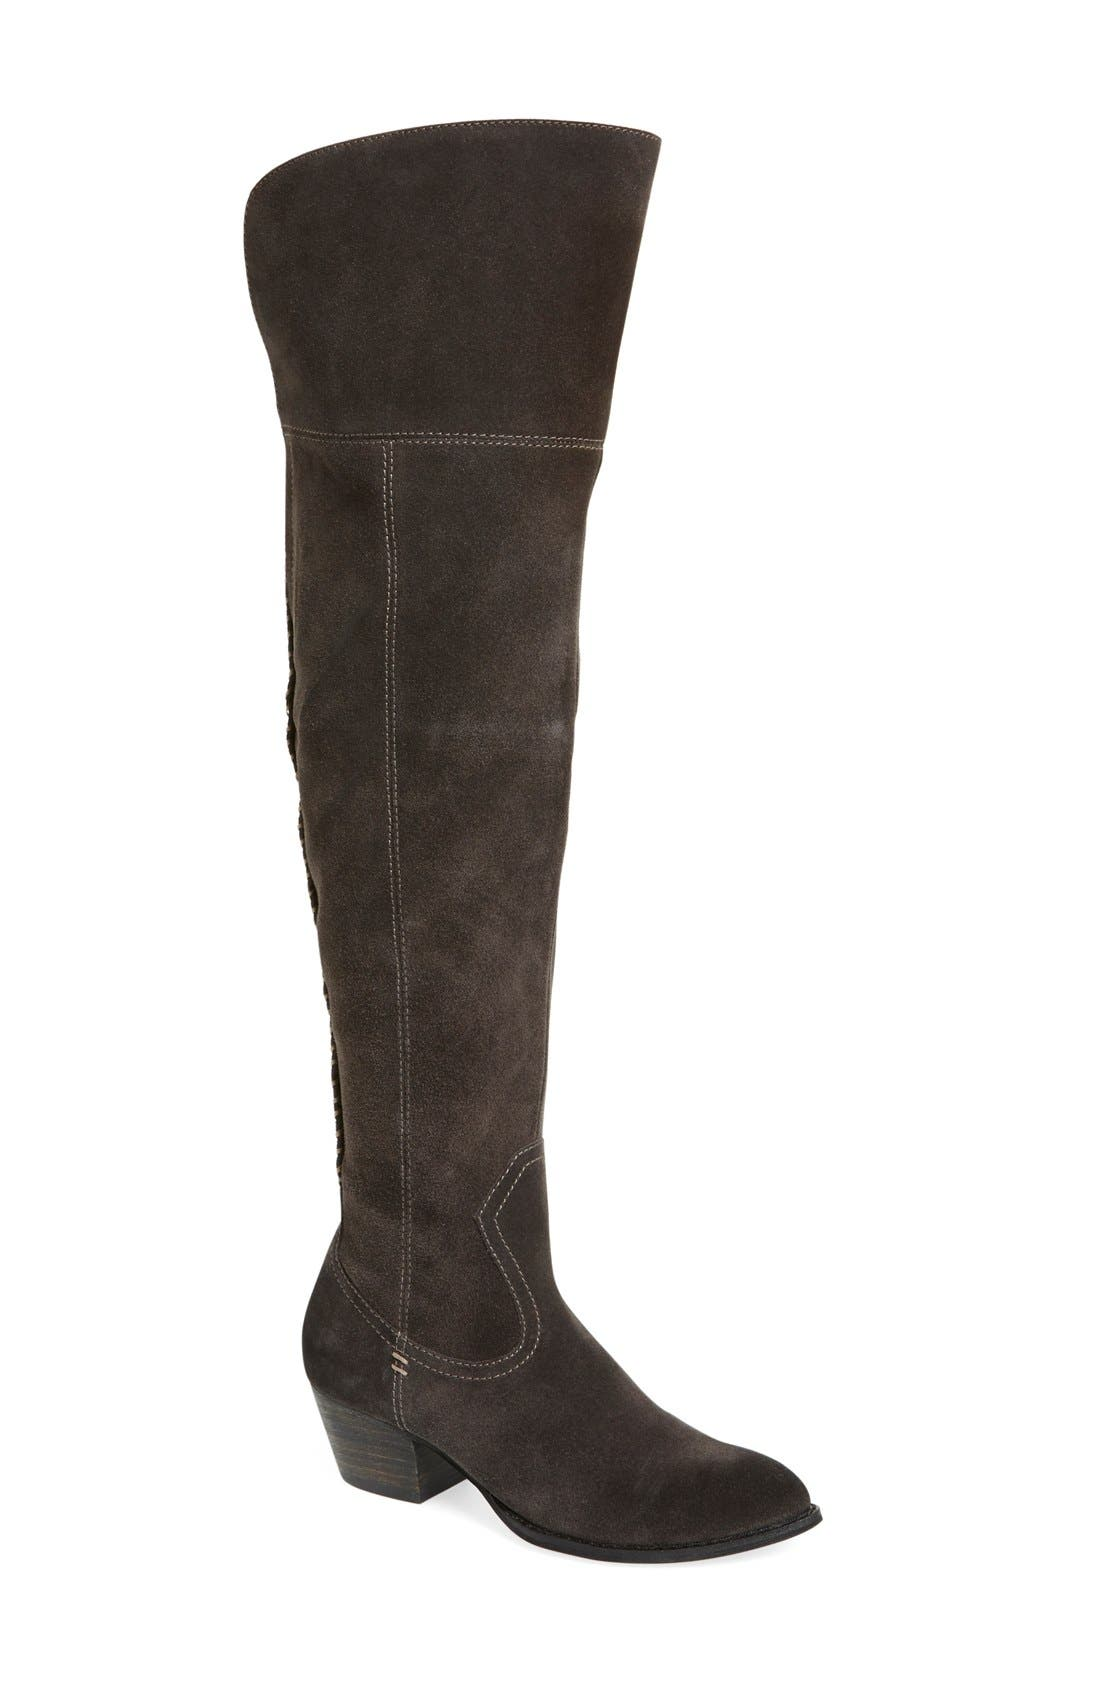 Main Image - Dolce Vita 'Silas' Over the Knee Boot (Women)